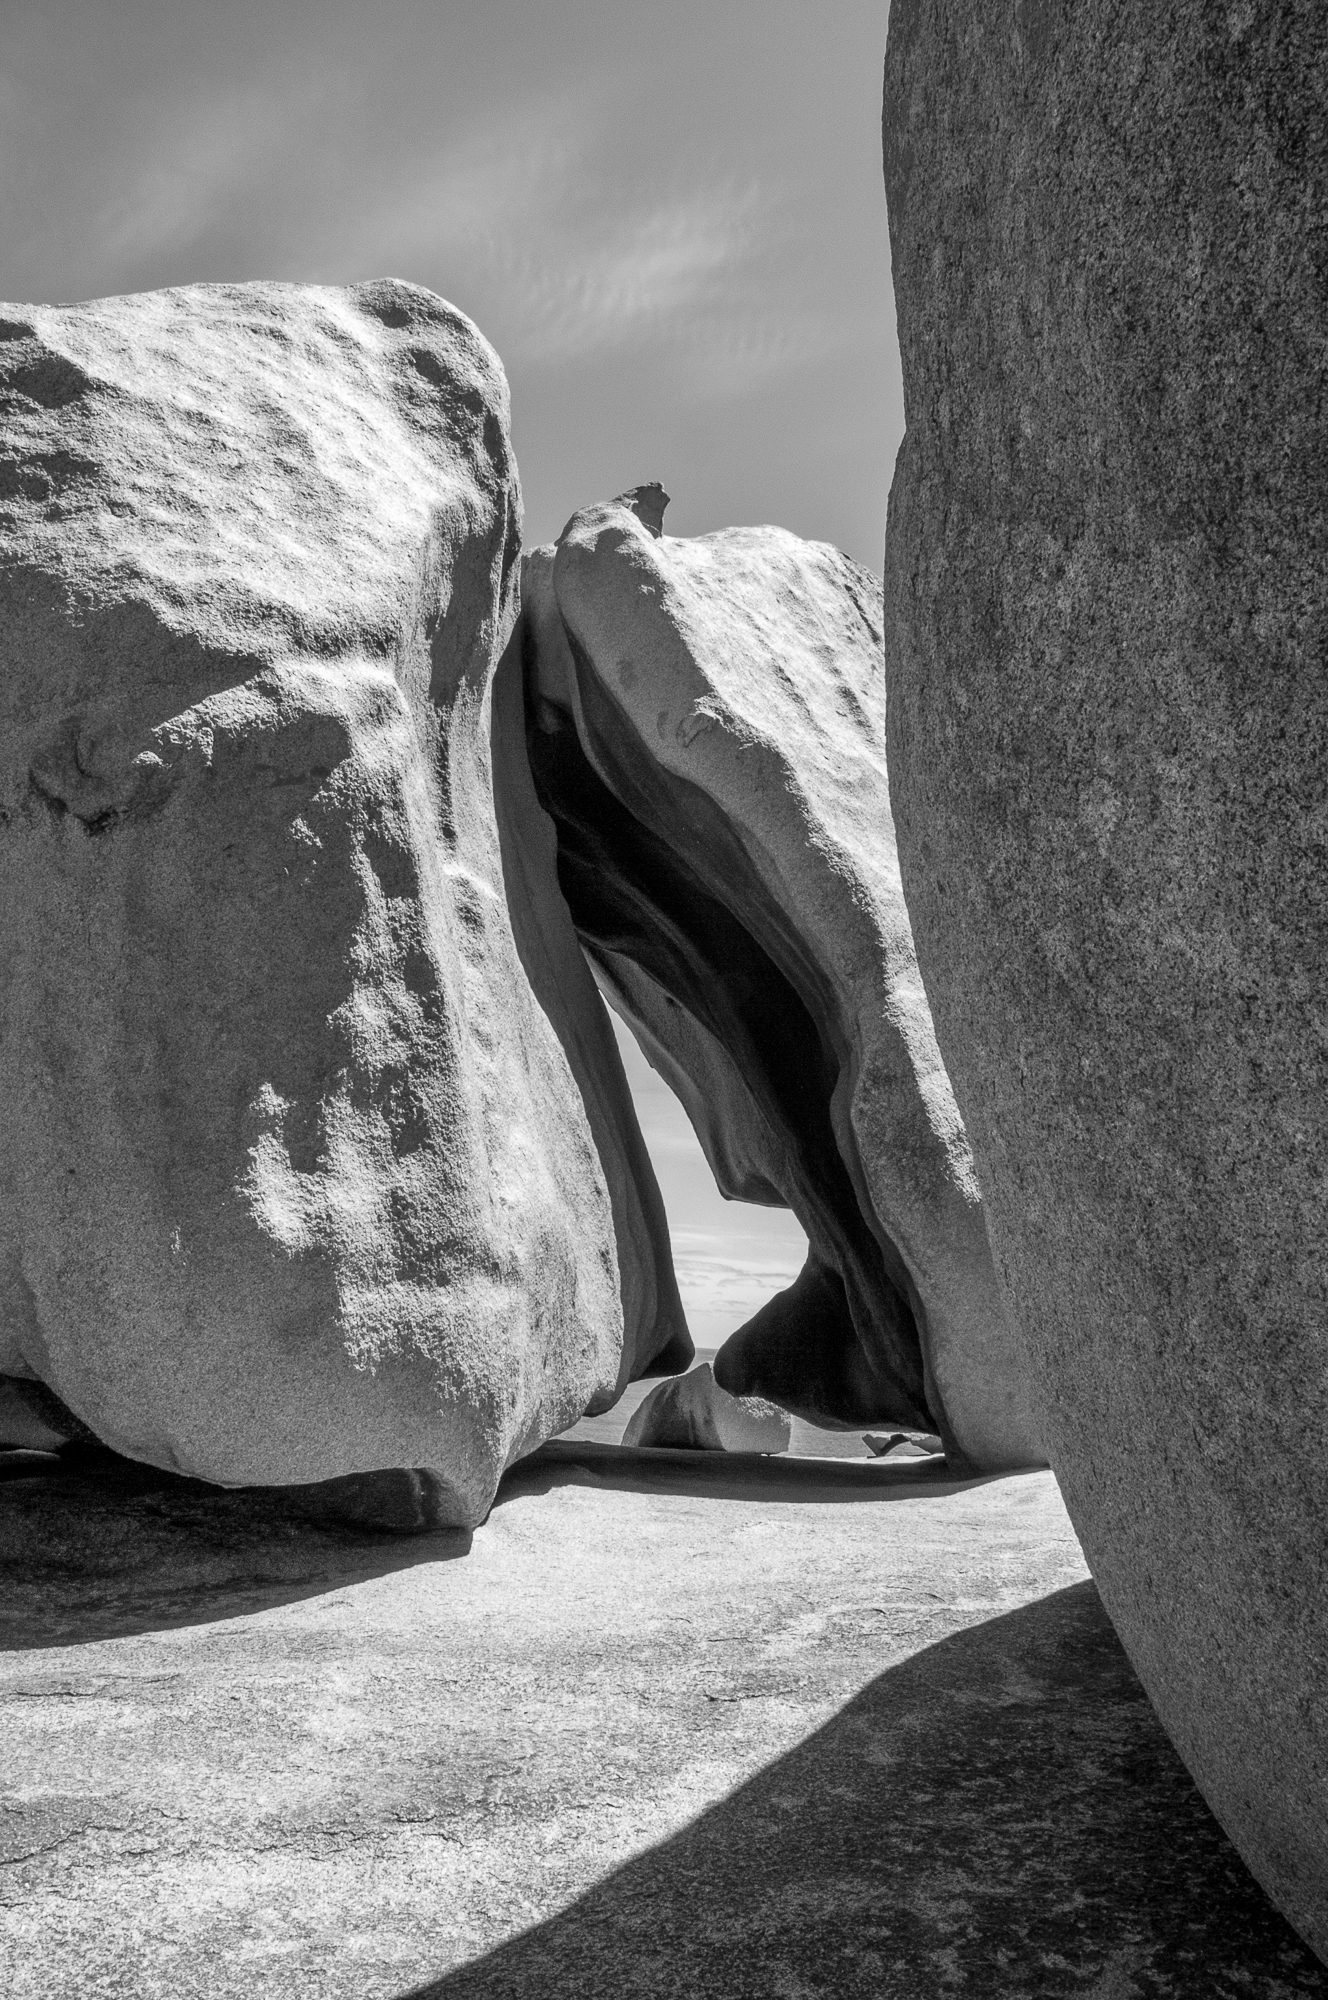 Remarkable Rocks, Kangaroo Island, South Australia